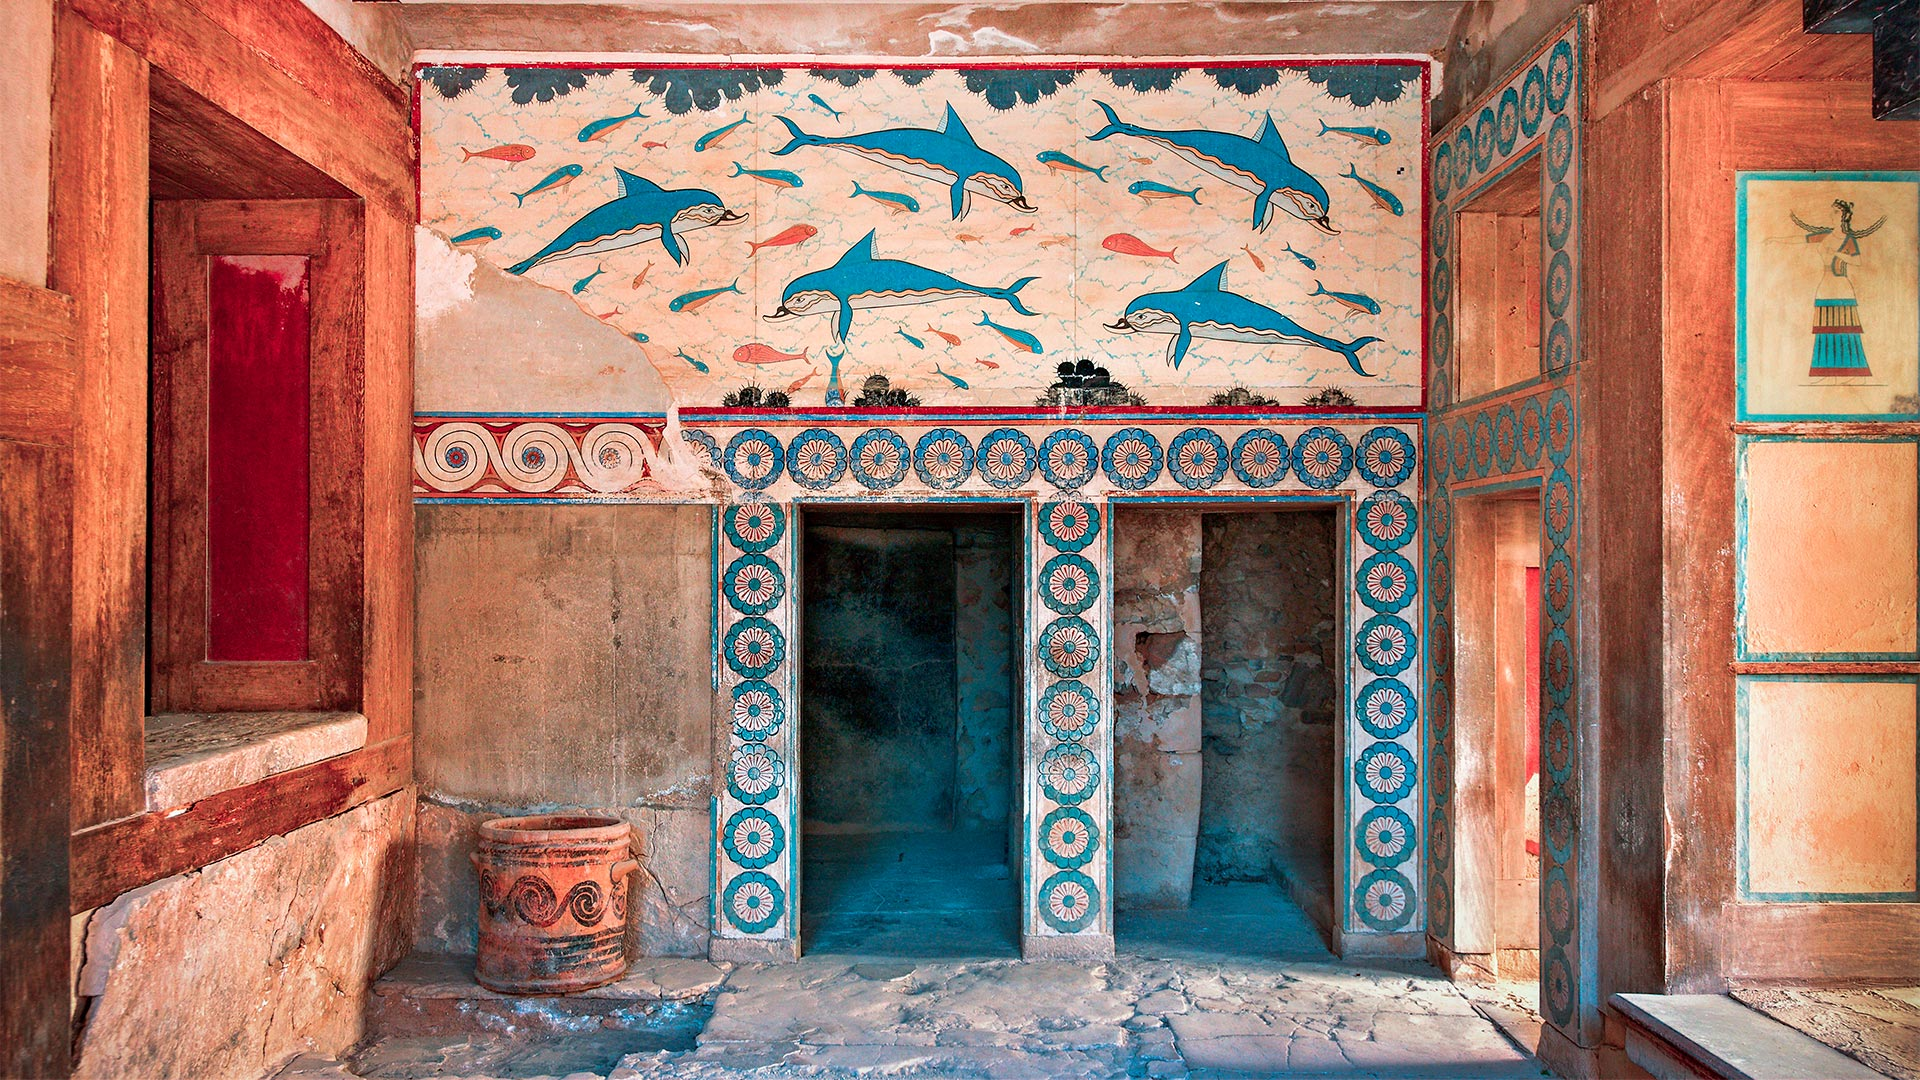 A room at Knossos palace